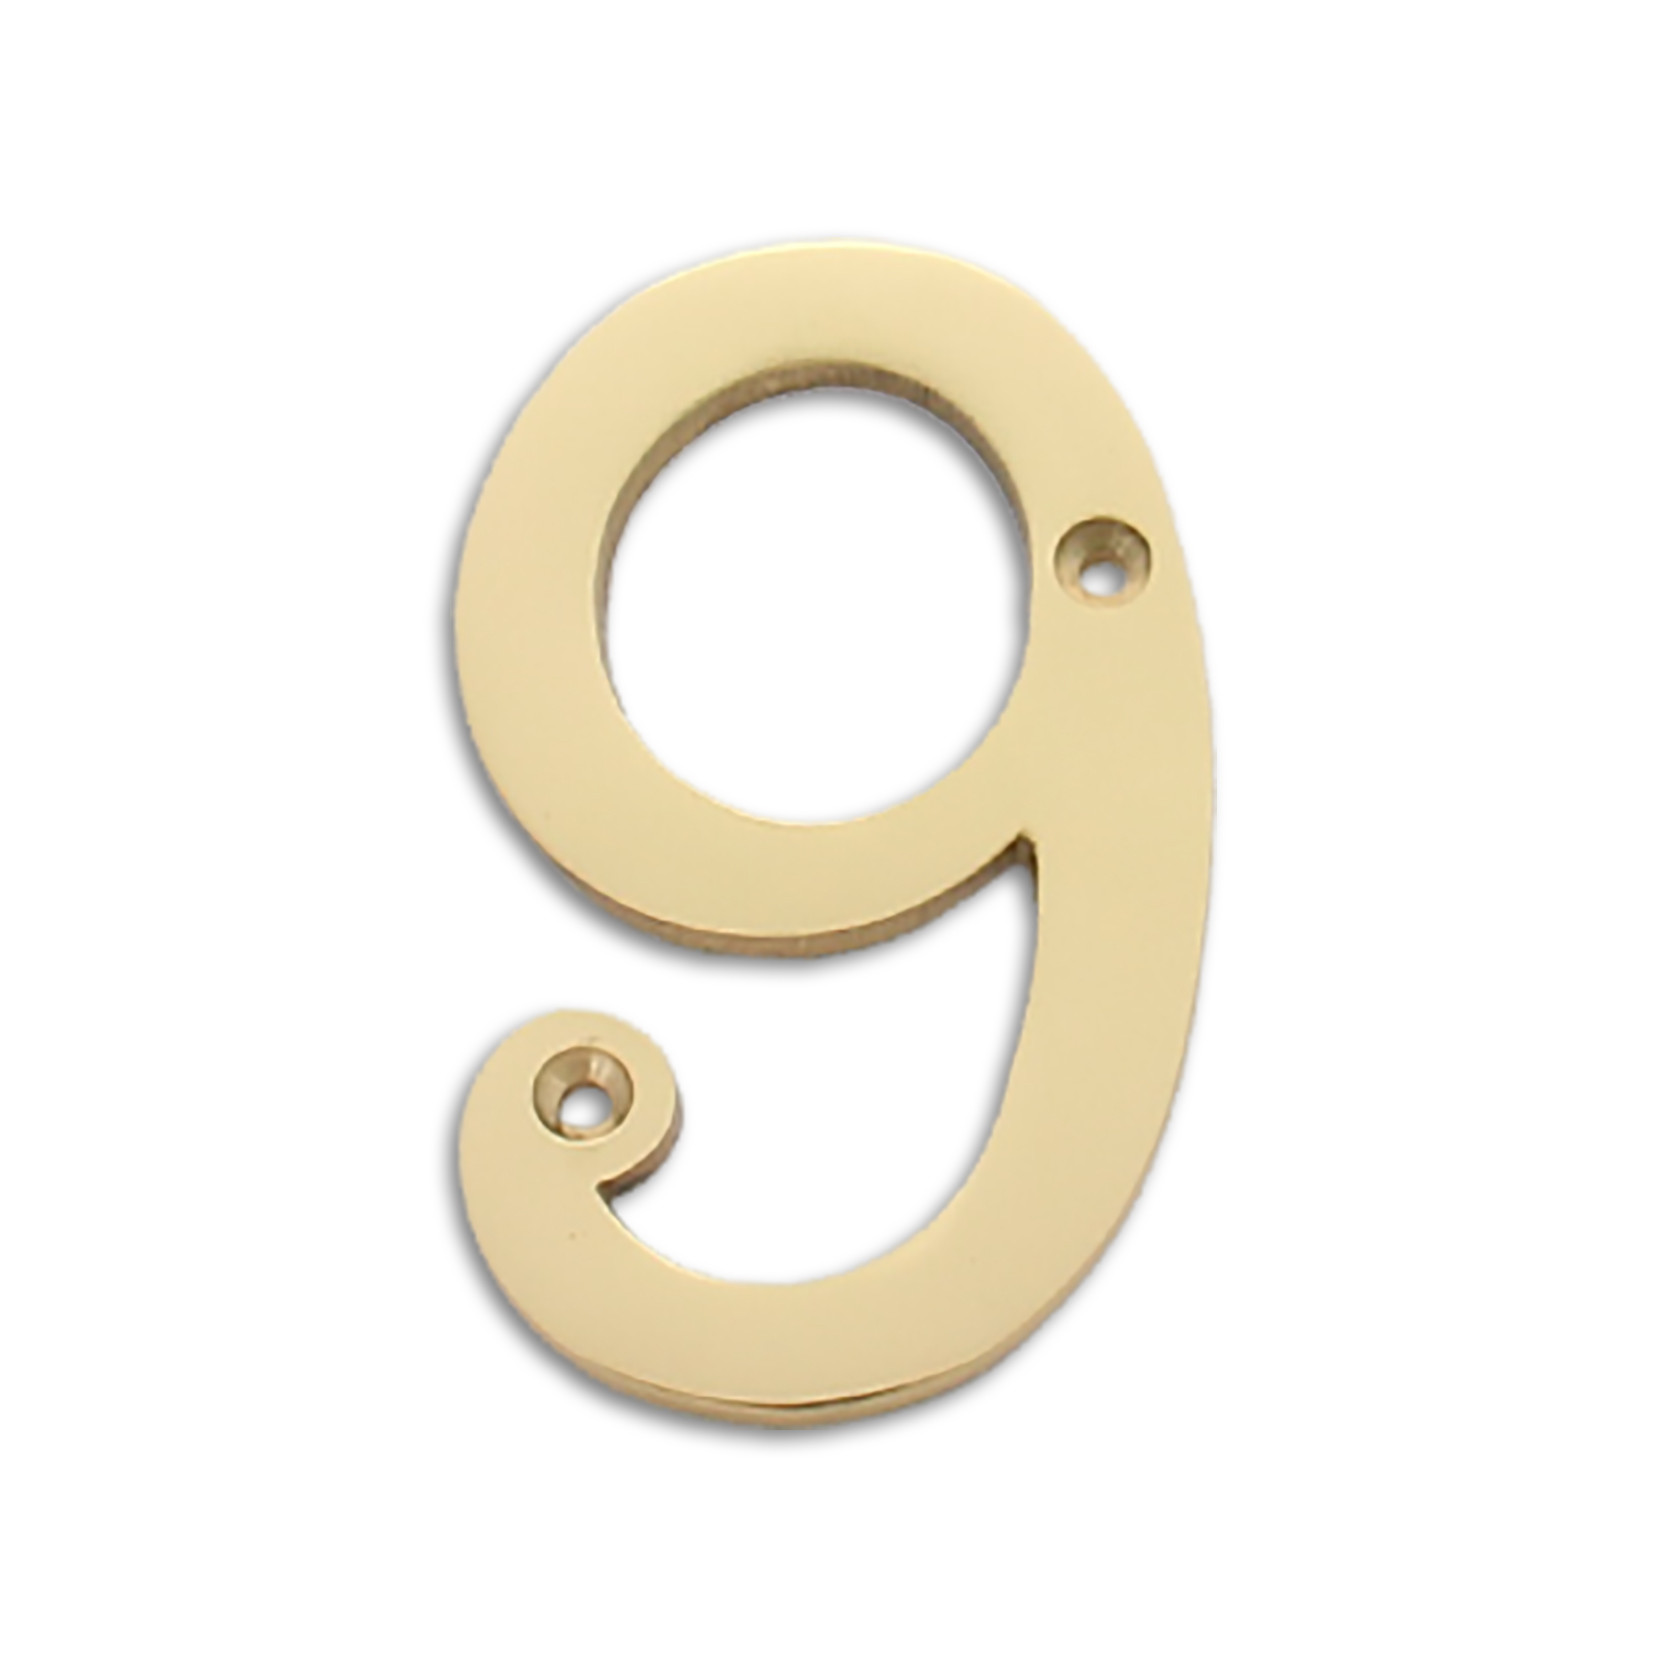 4-inch brass metal house number in polished brass finish - metal number 9